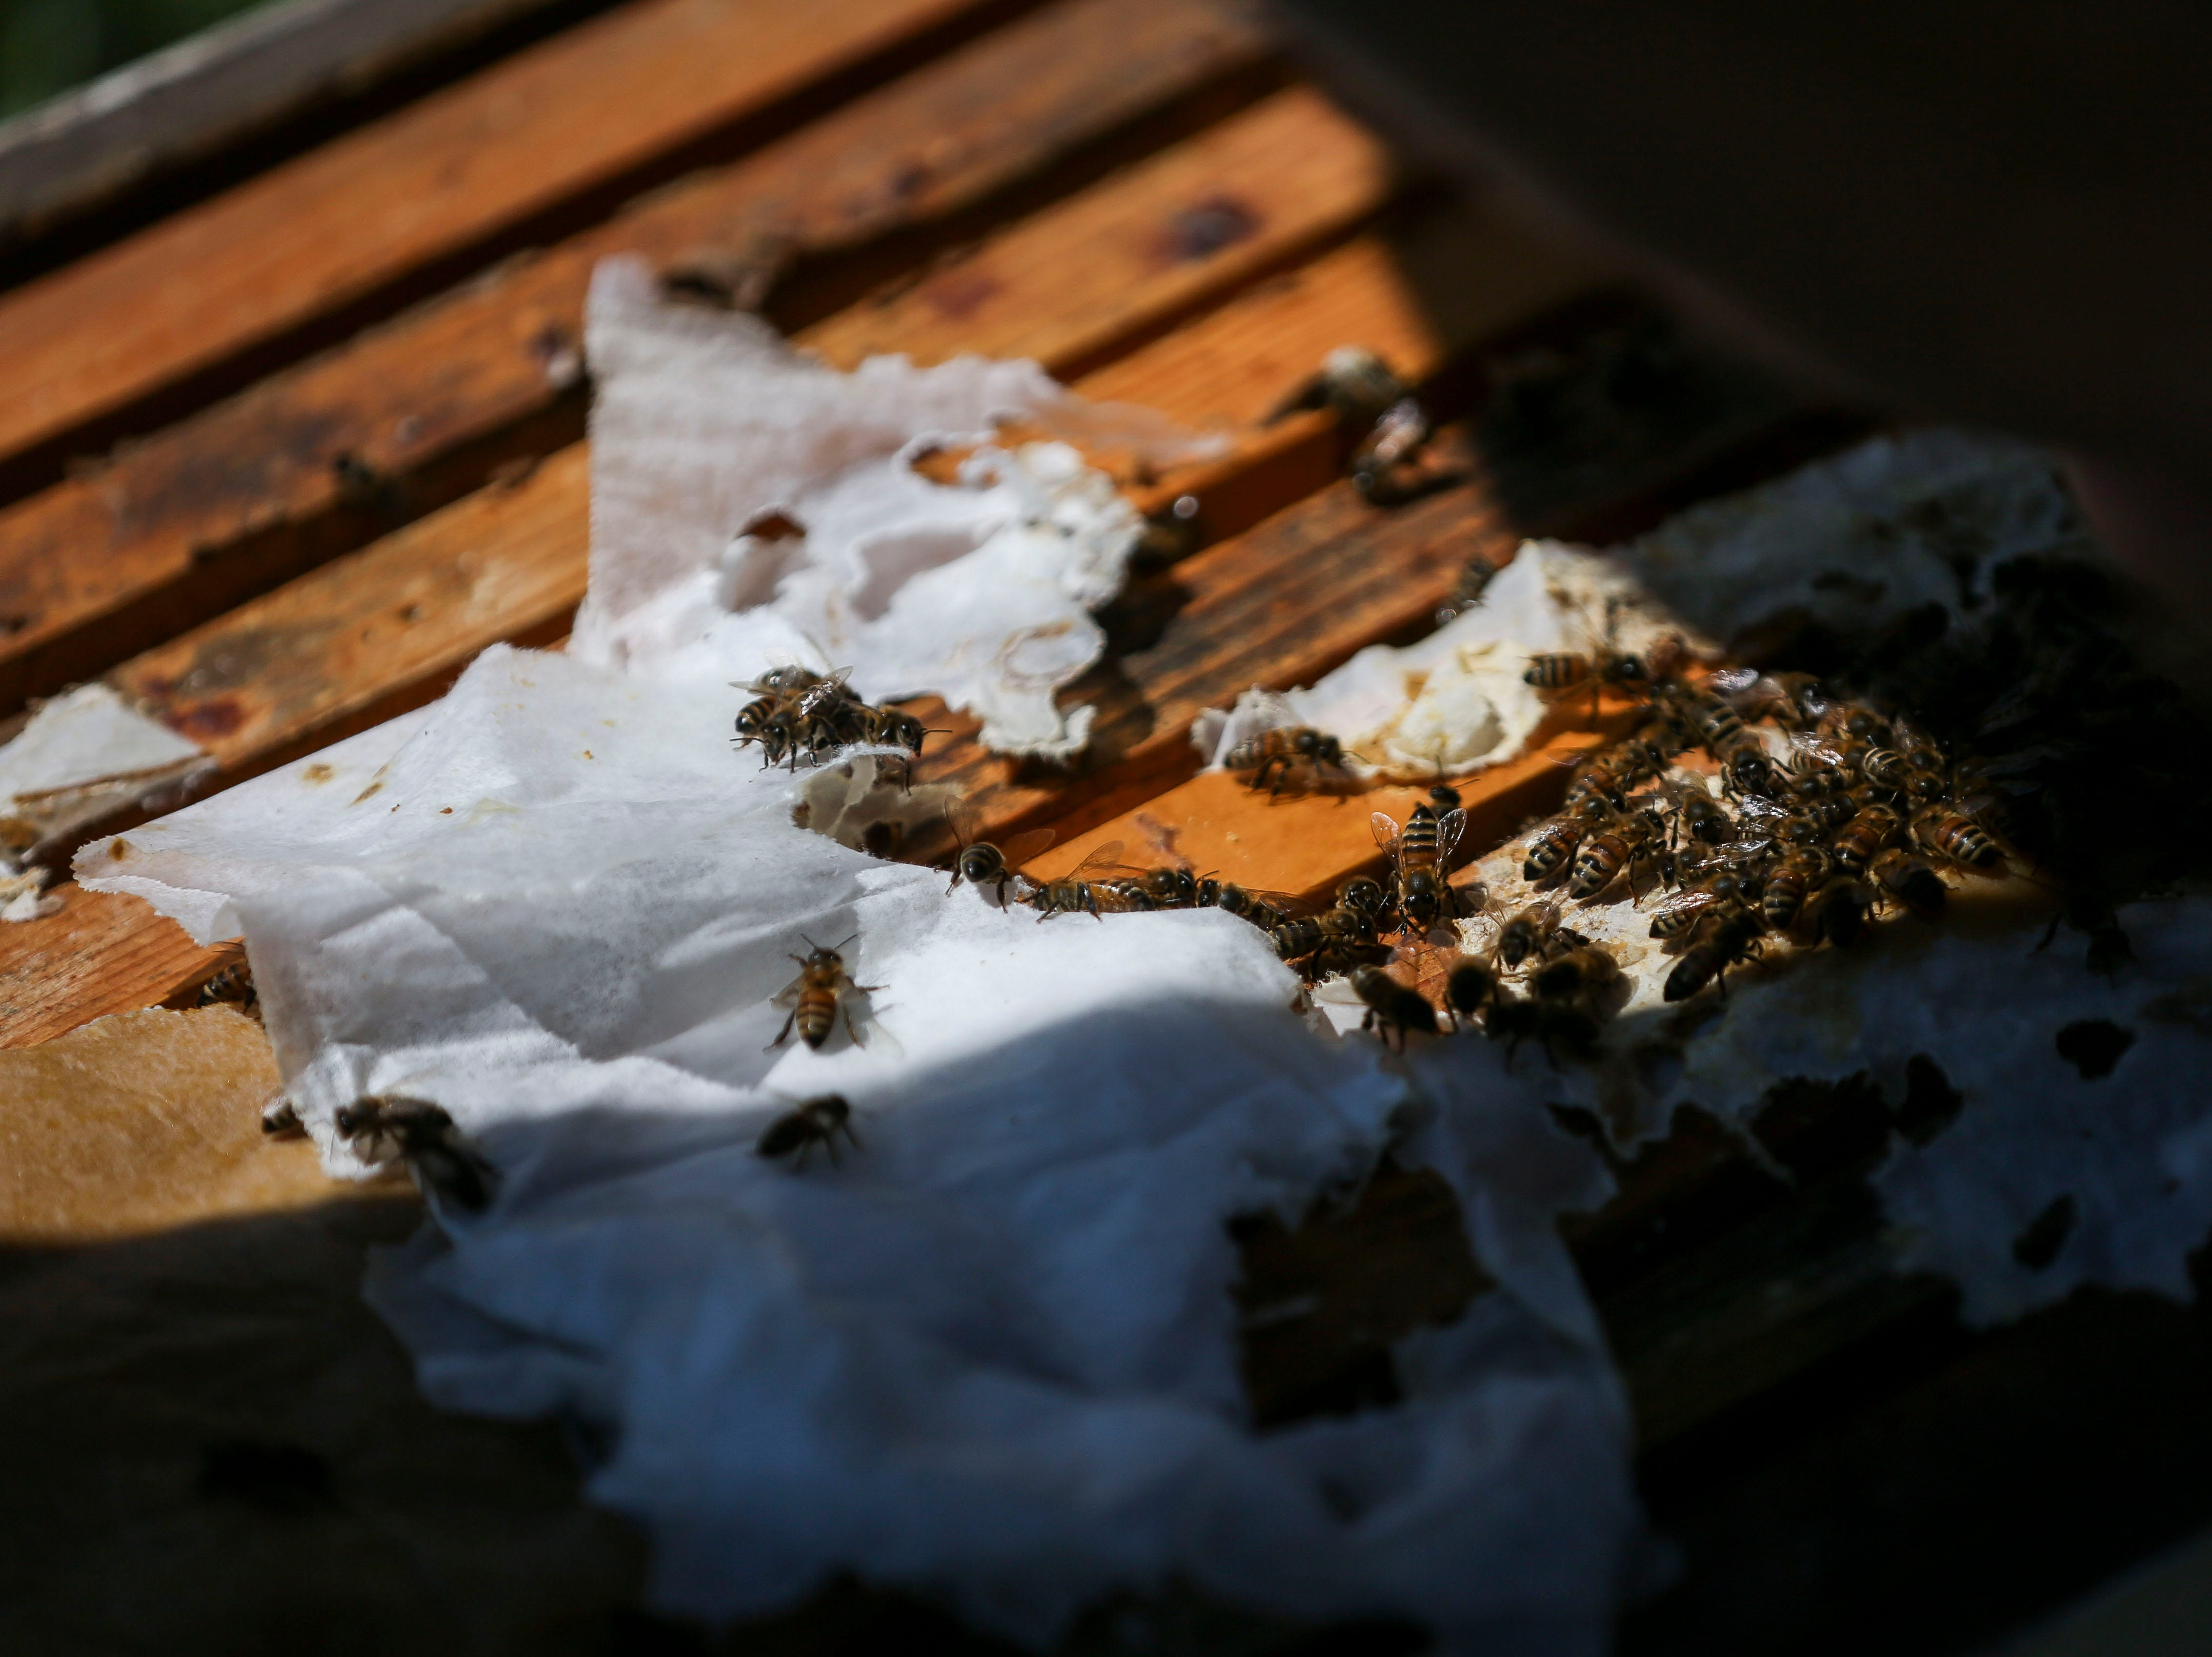 Bees feed on a winter pattie, packs of honey used to sustain bees during the winter months, in the Hosey Honey bee yard in Midway, Ky. on Wednesday, April 3, 2019. Hosey Honey is a small family run honey company, their Hosey's Queen's Triple Crown honey is used in the sweetener in the $1,000 Woodford Reserve Kentucky Derby mint julep.